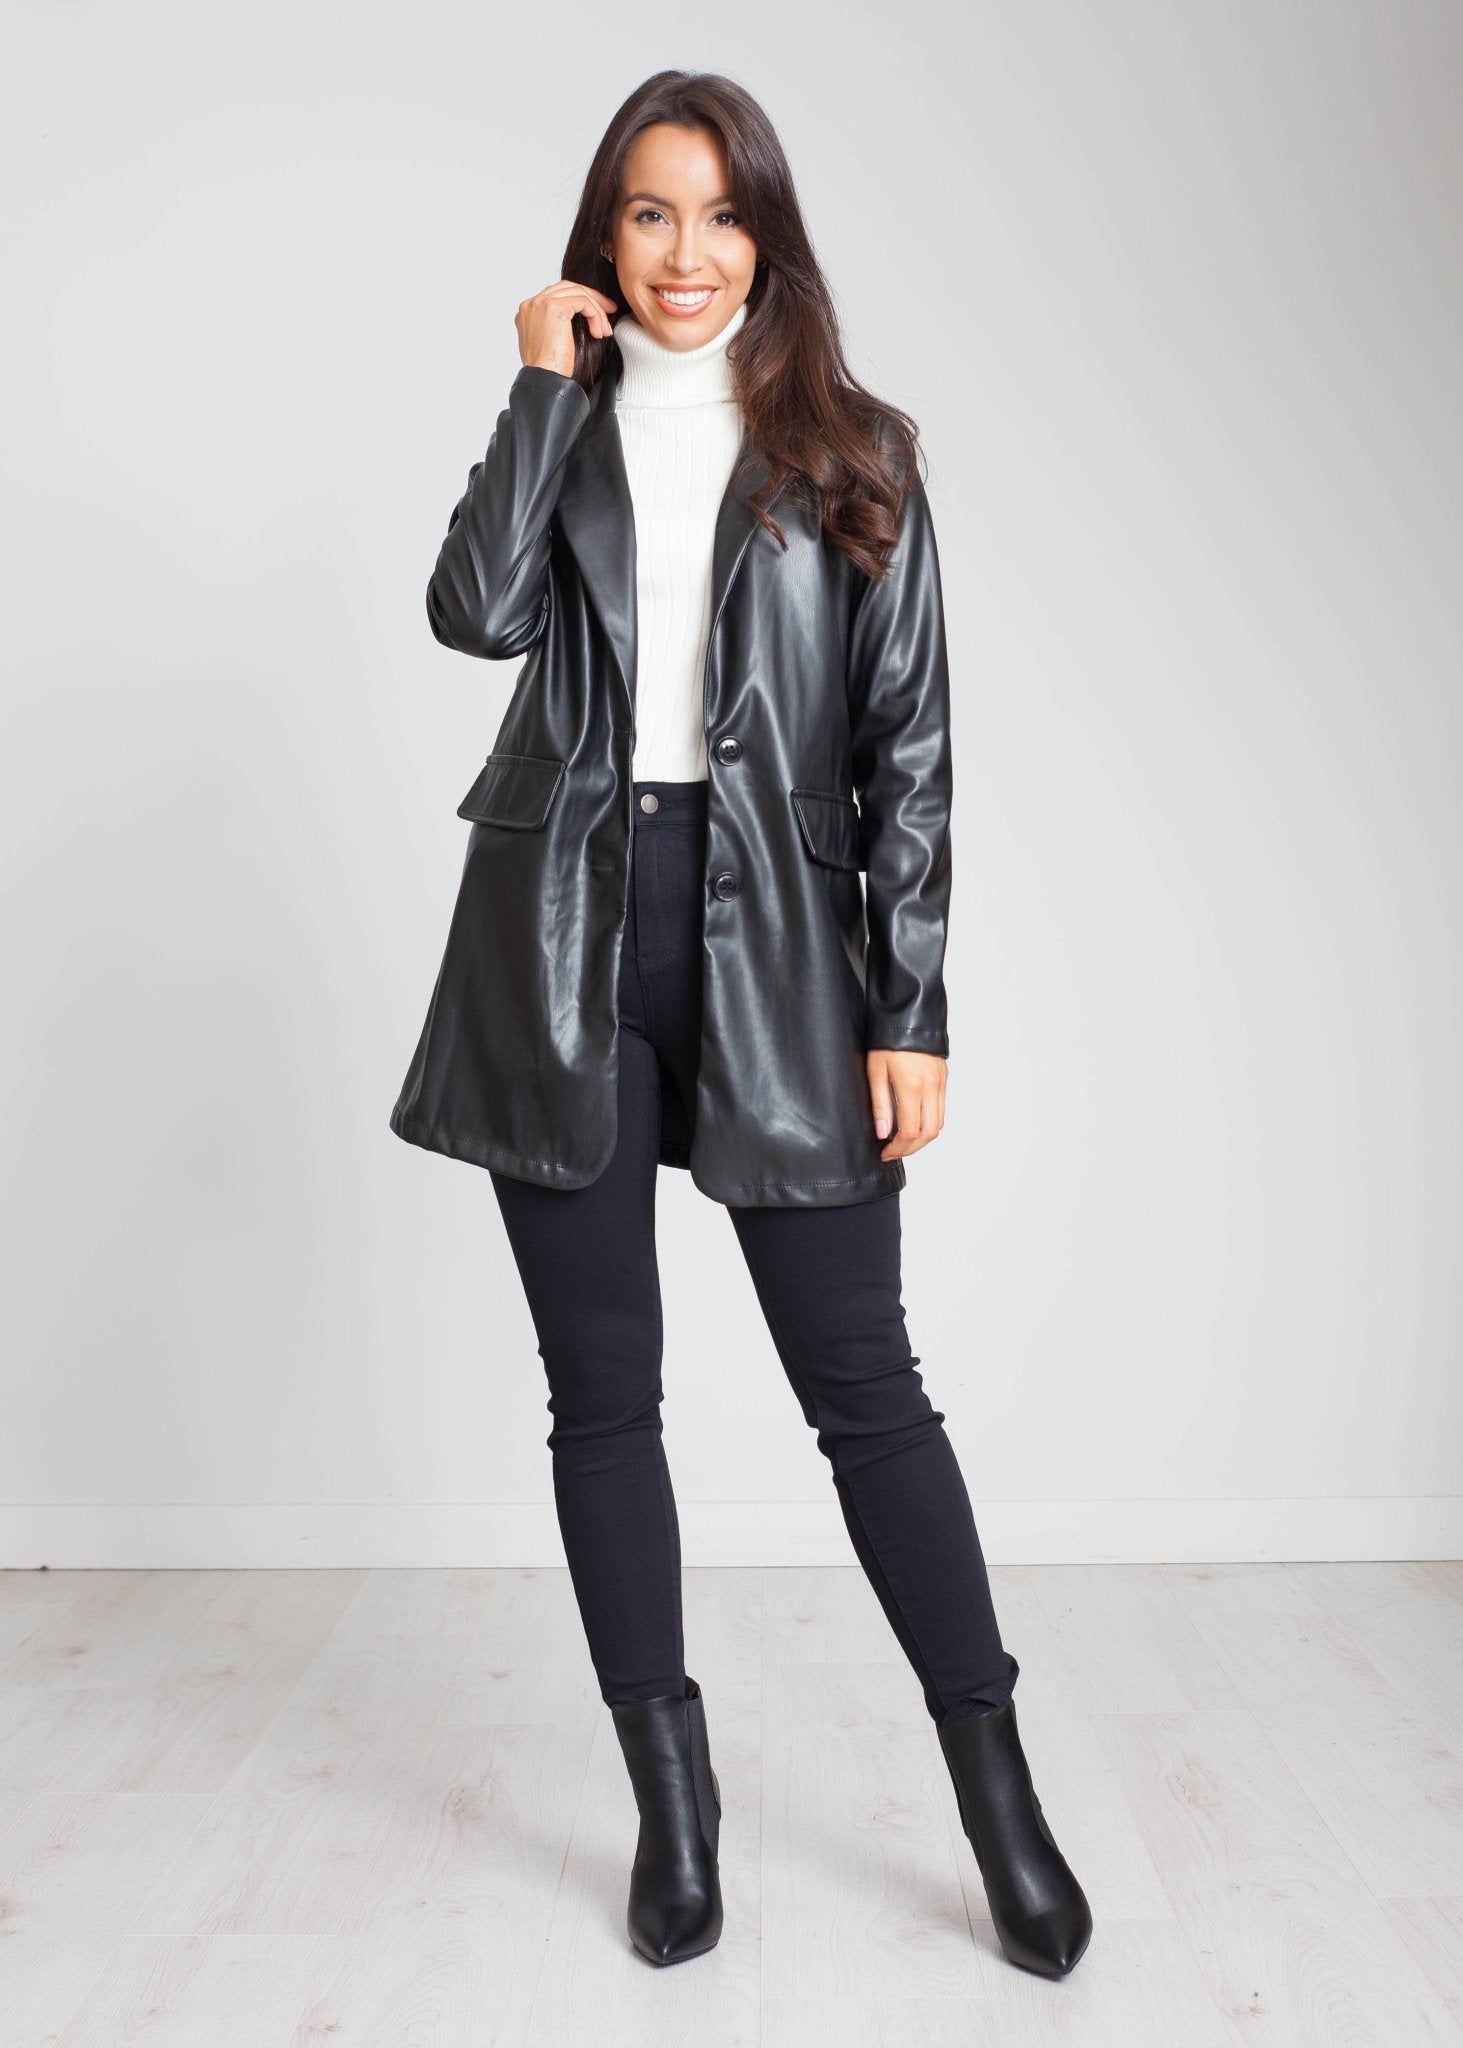 Sarah Leather Look Blazer In Black - The Walk in Wardrobe